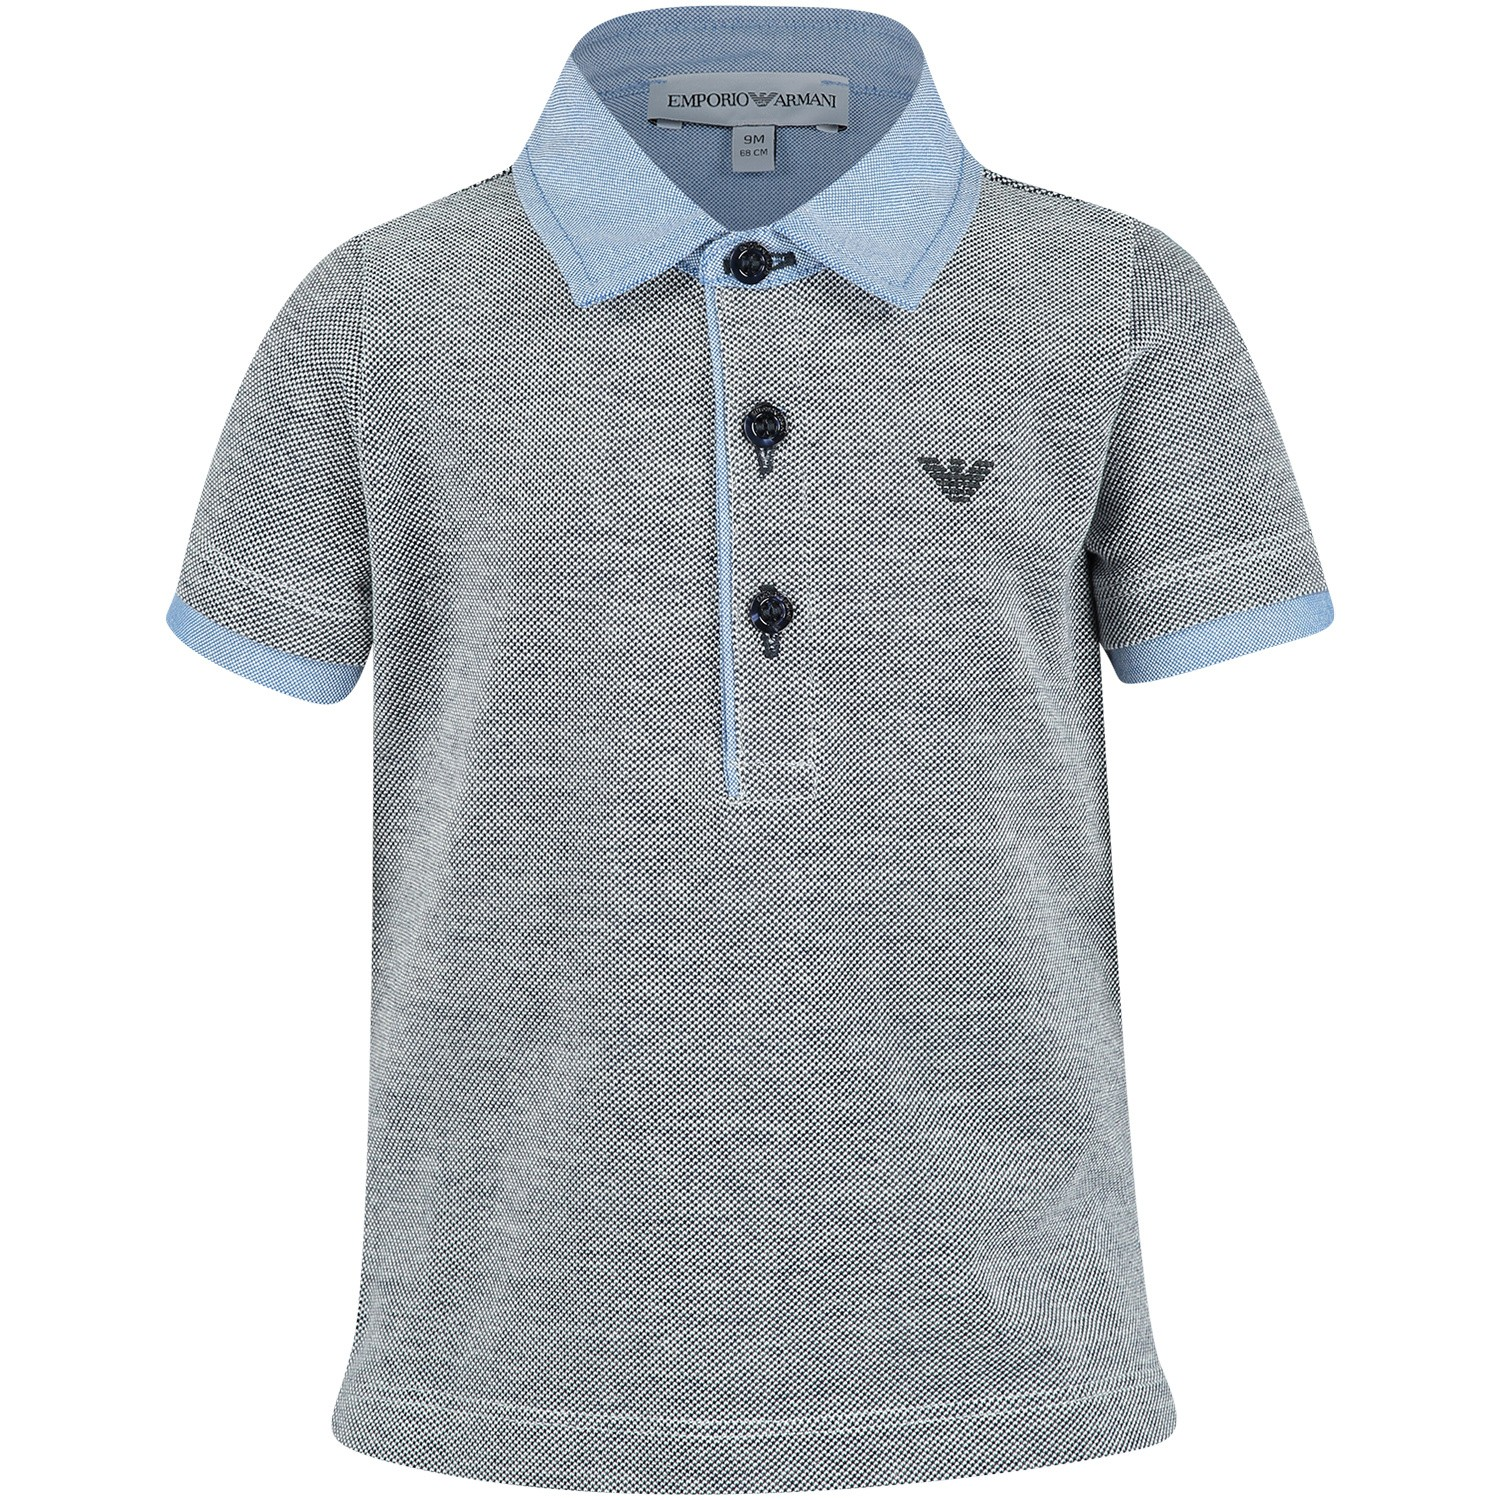 Picture of Armani 3GHF06 baby poloshirt blue